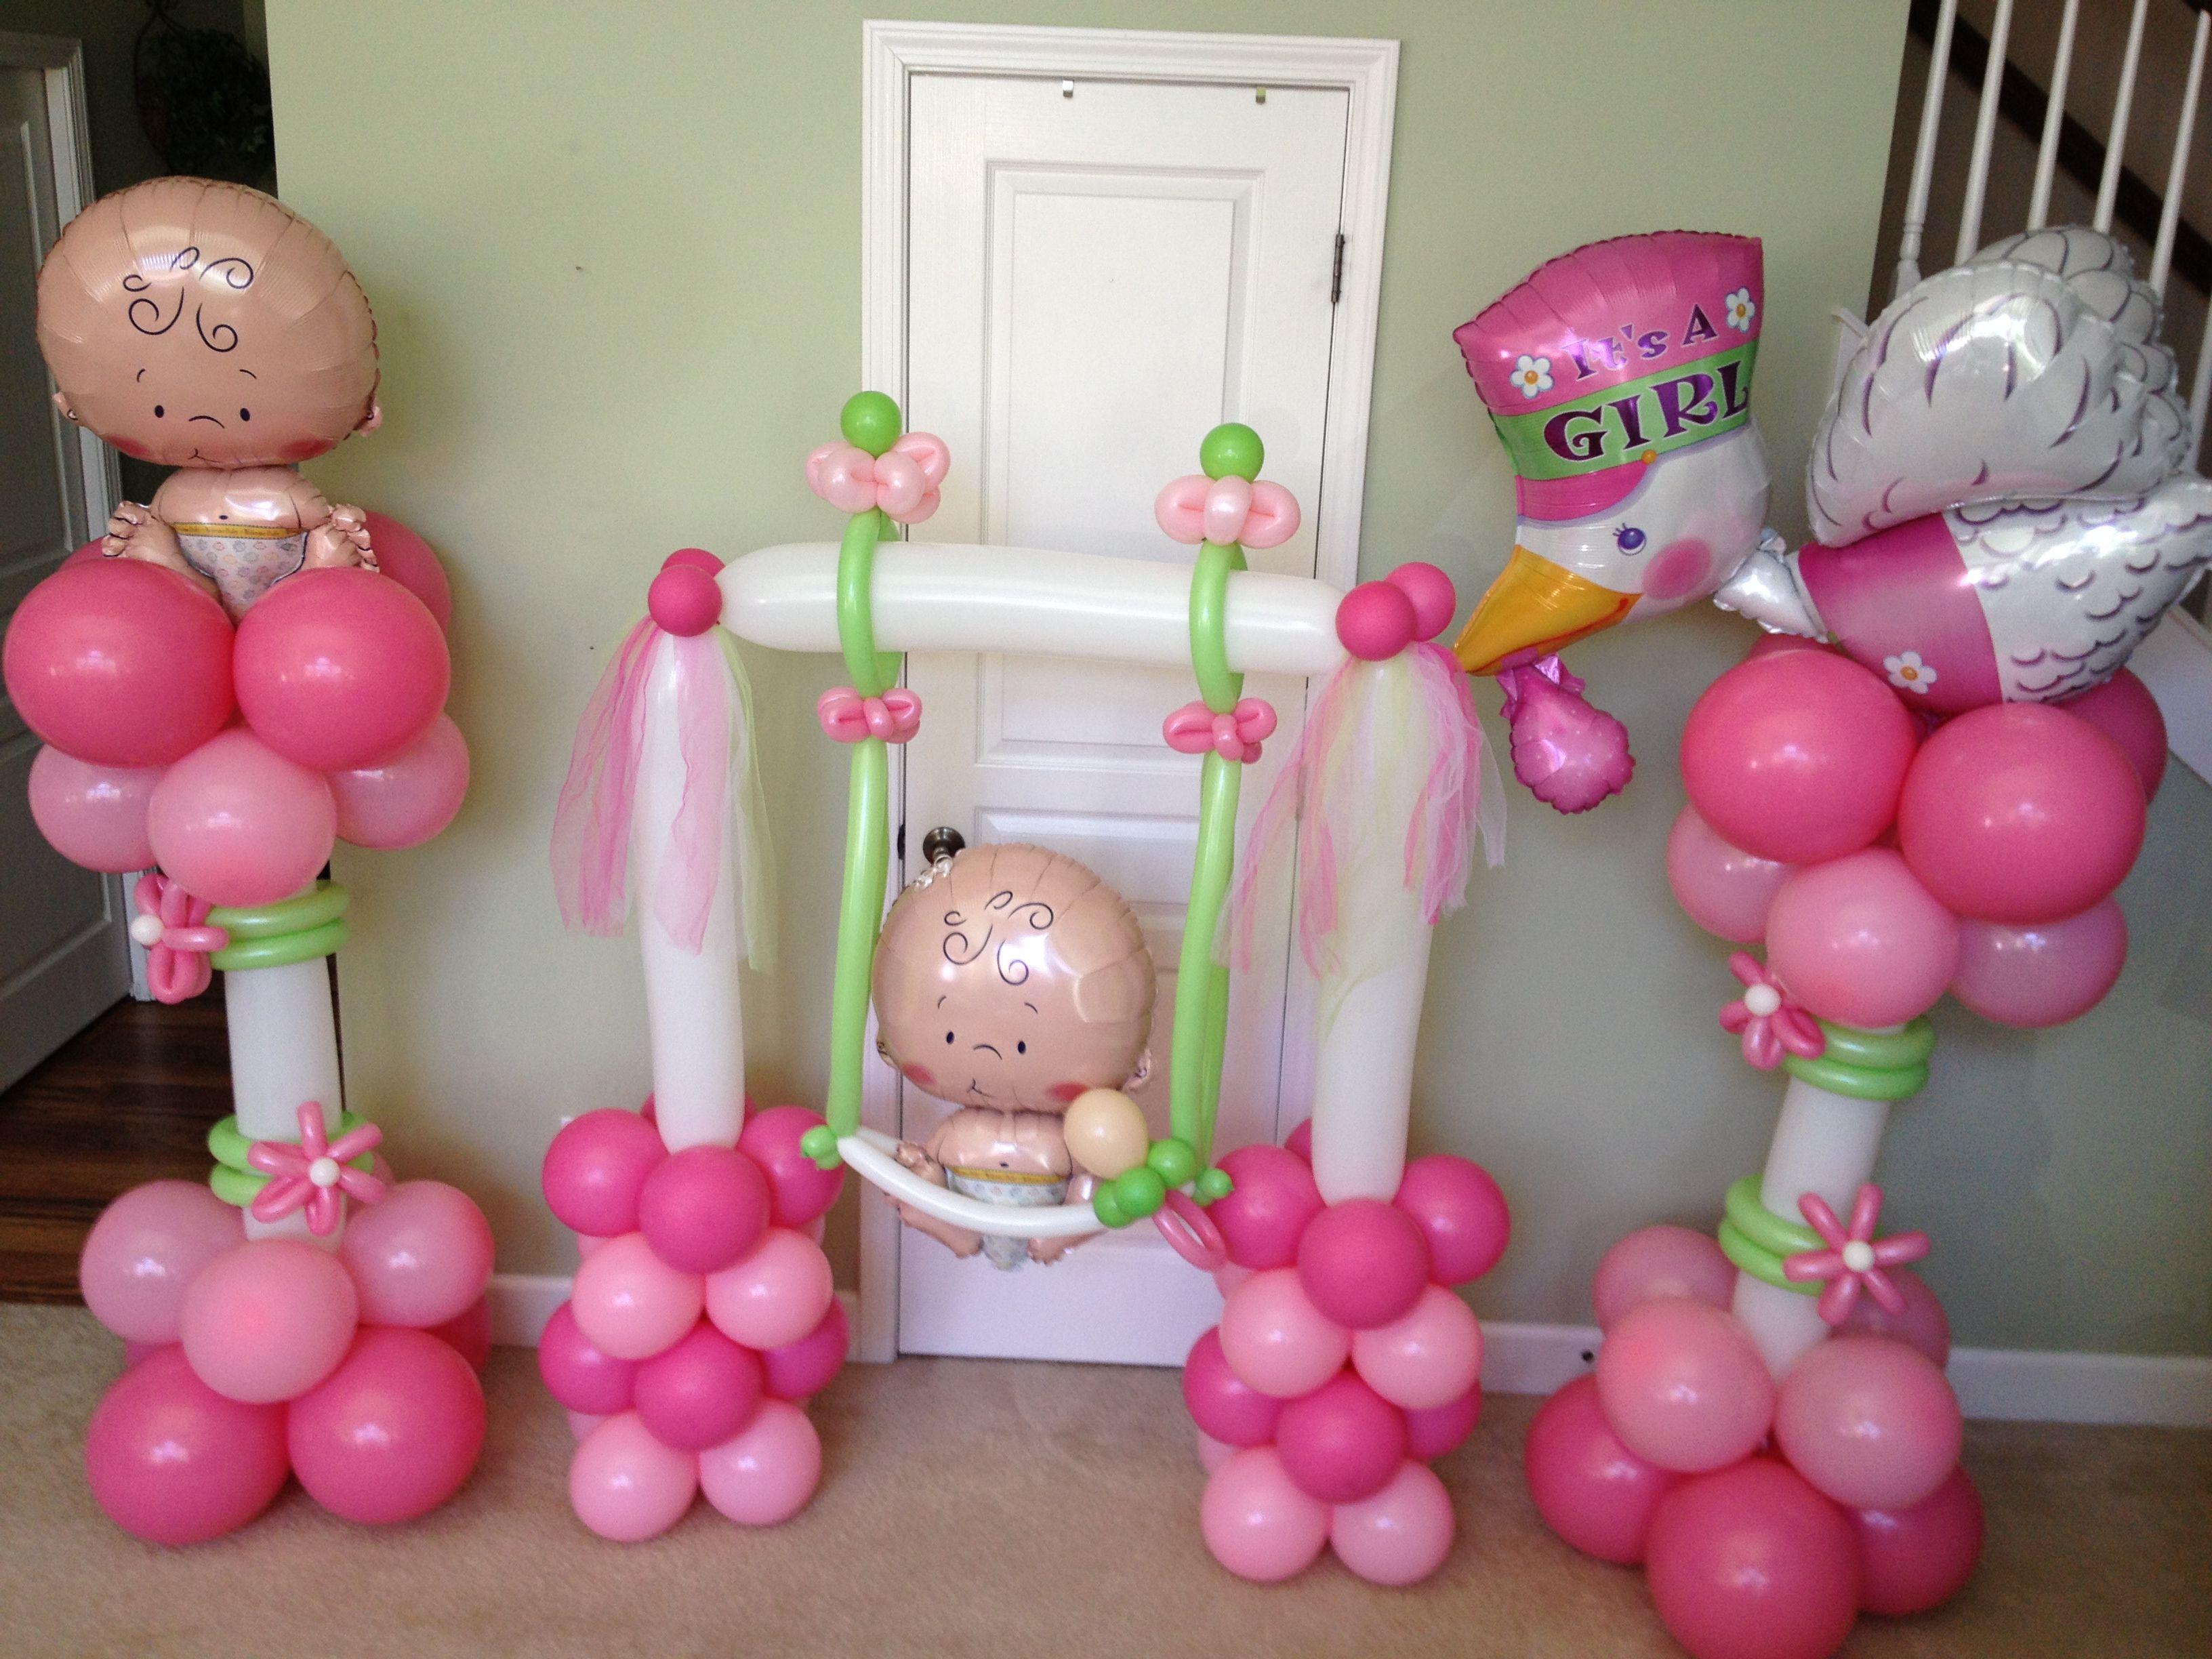 Baby girl balloon decorations baby shower balloons for Baby shower decoration ideas for twins